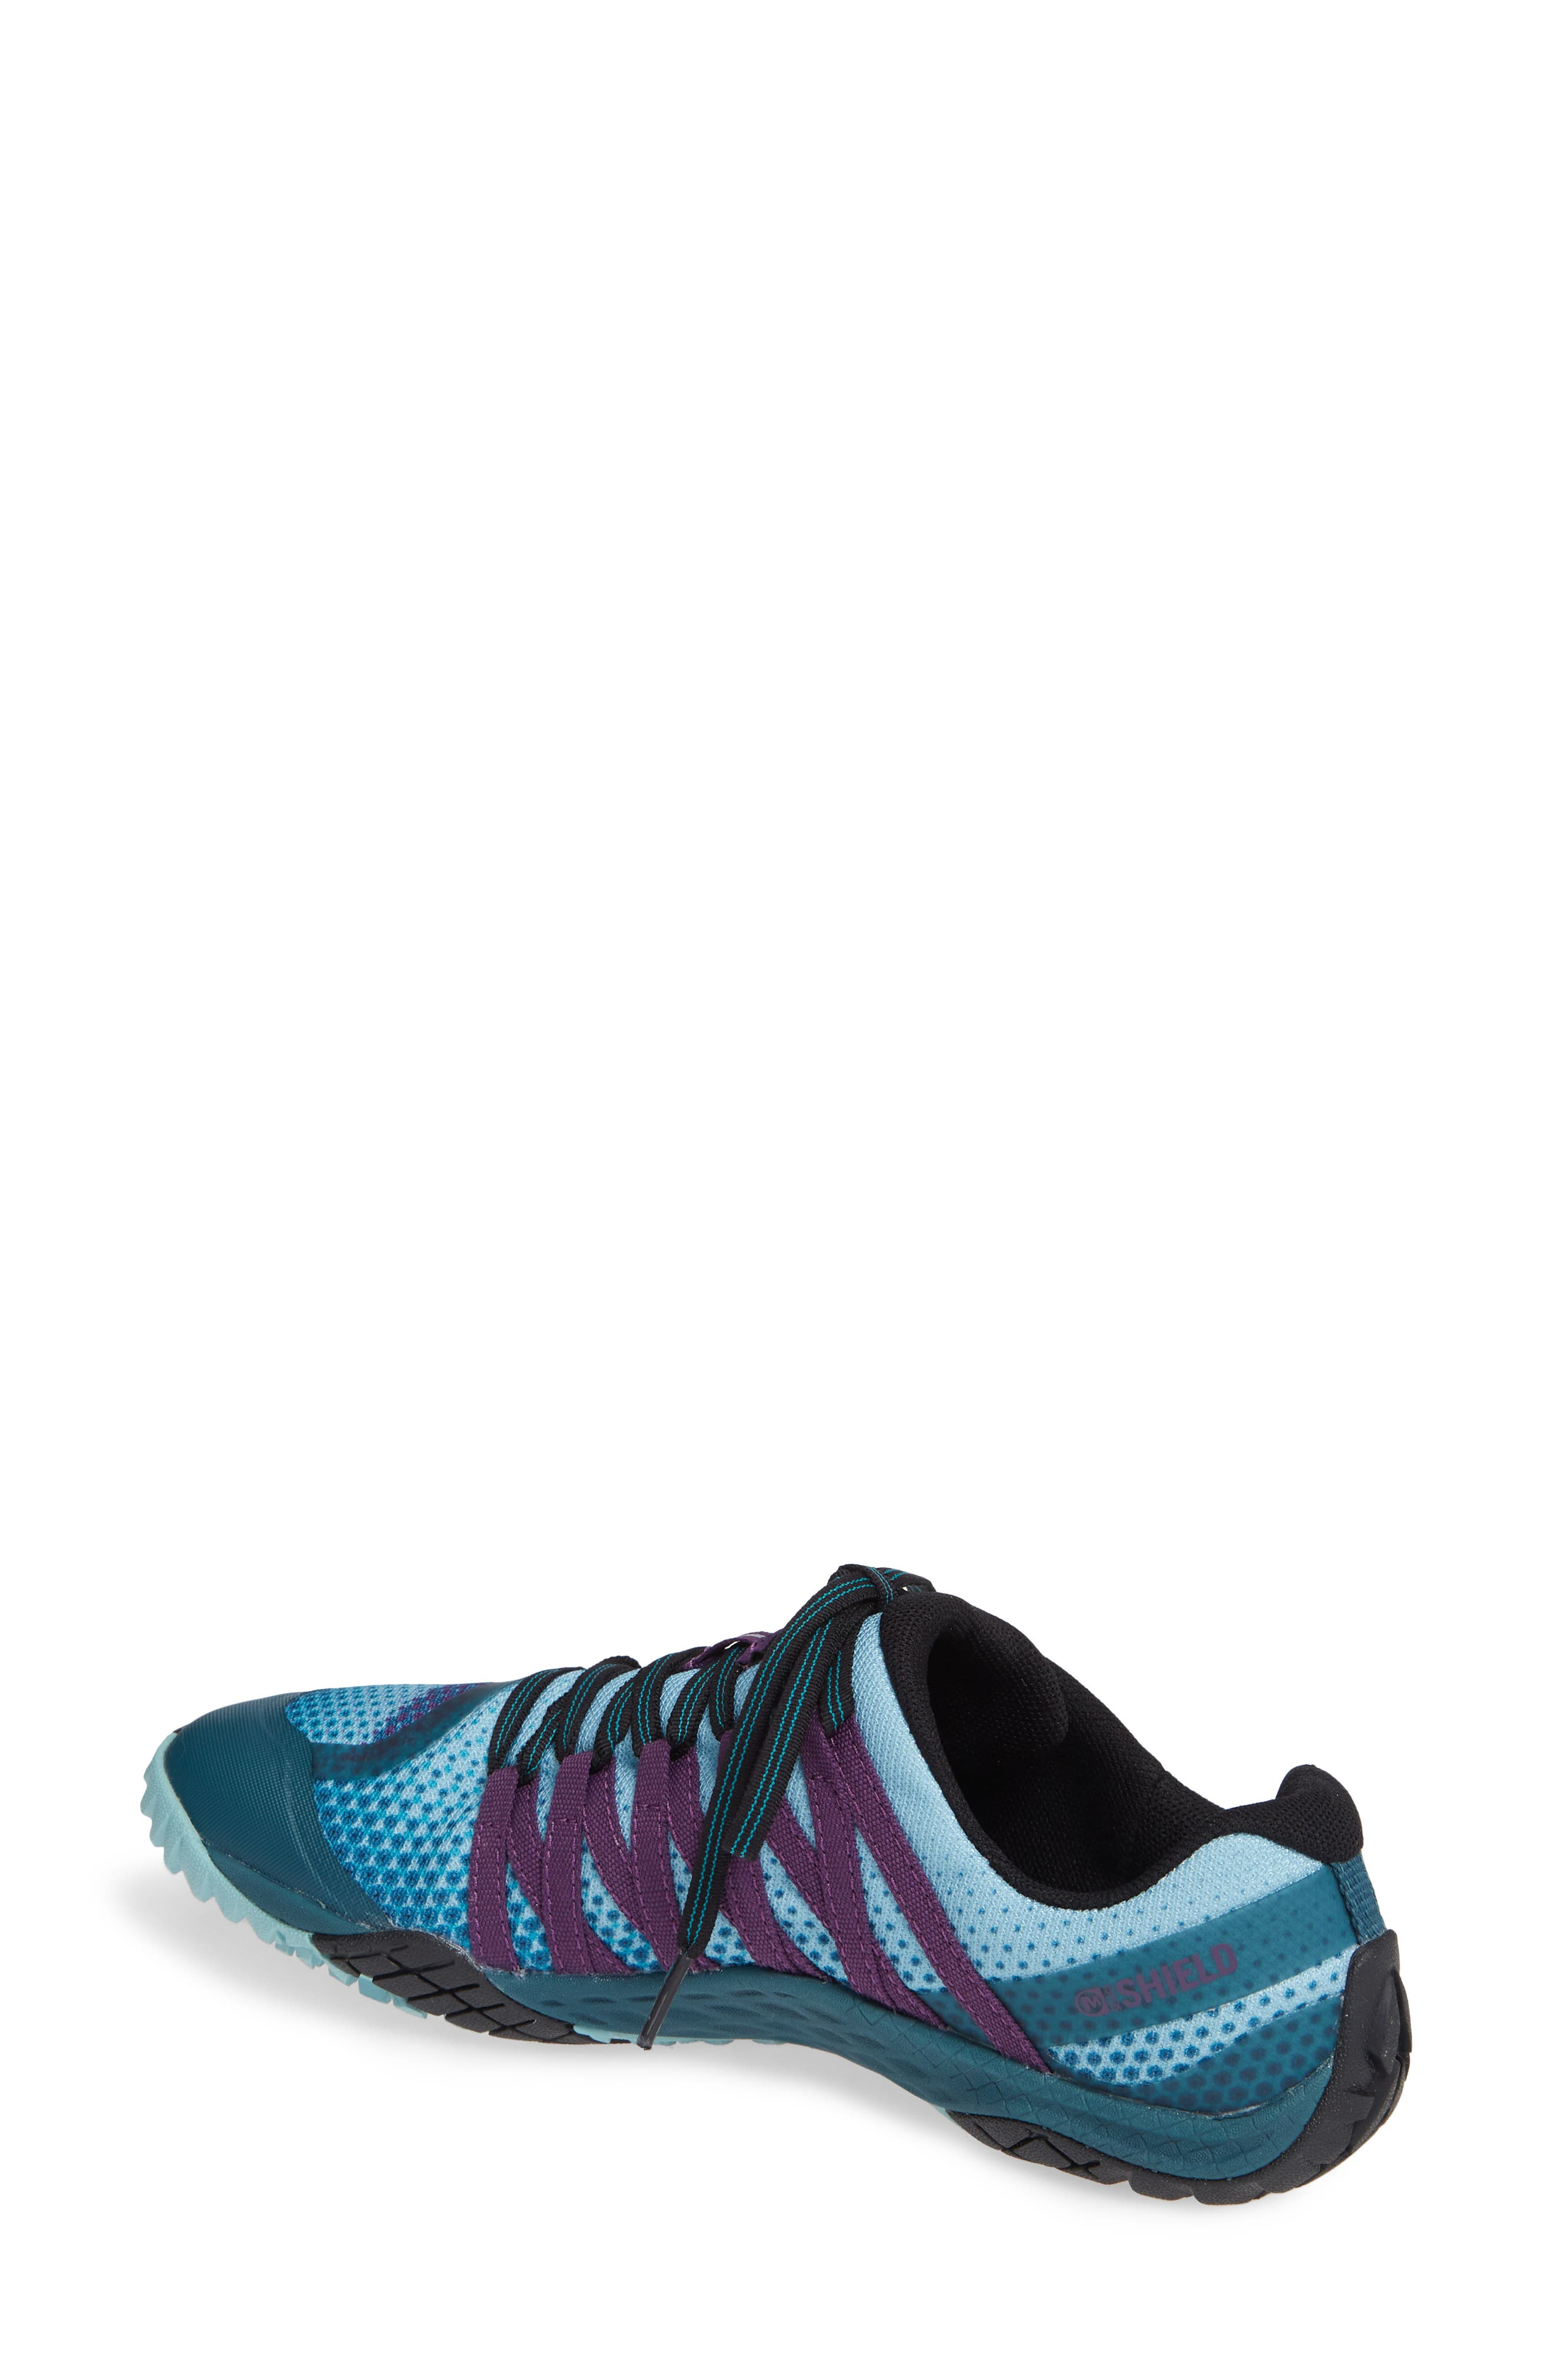 MERRELL, Trail Glove 4 Shield Water Resistant Running Shoe, Alternate thumbnail 2, color, 400